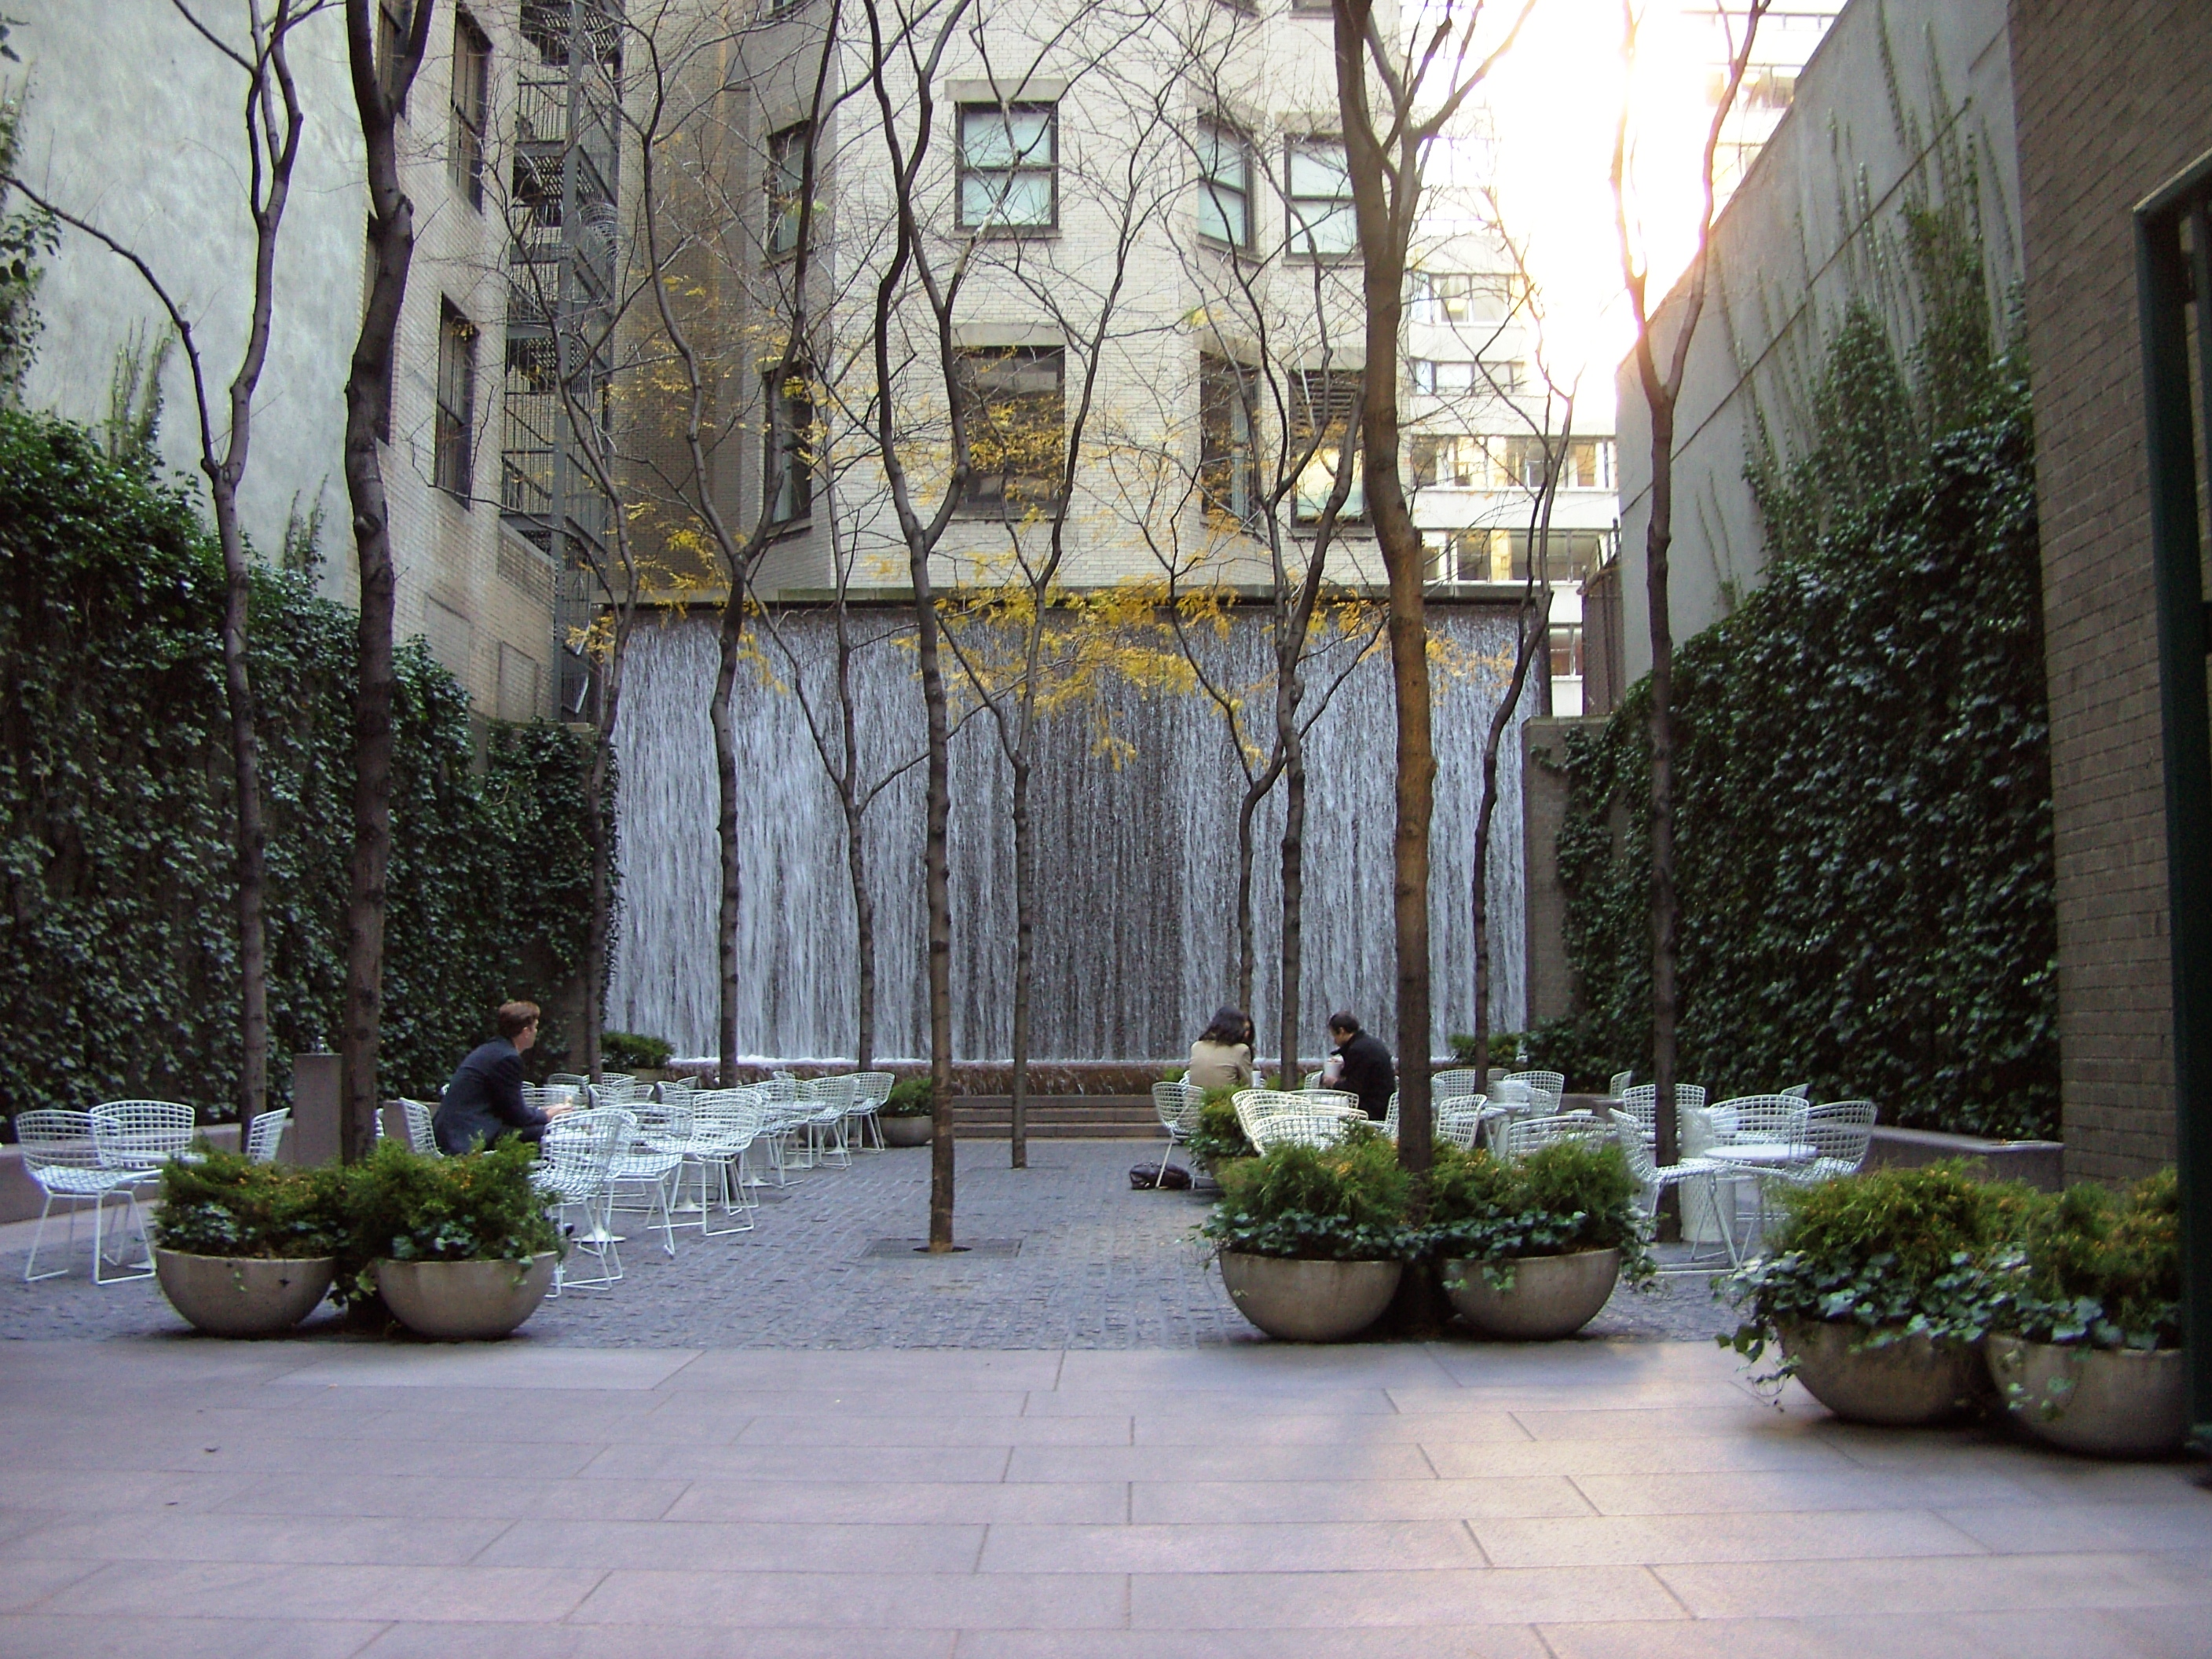 Pocket Park_Square, Manhatten, NY